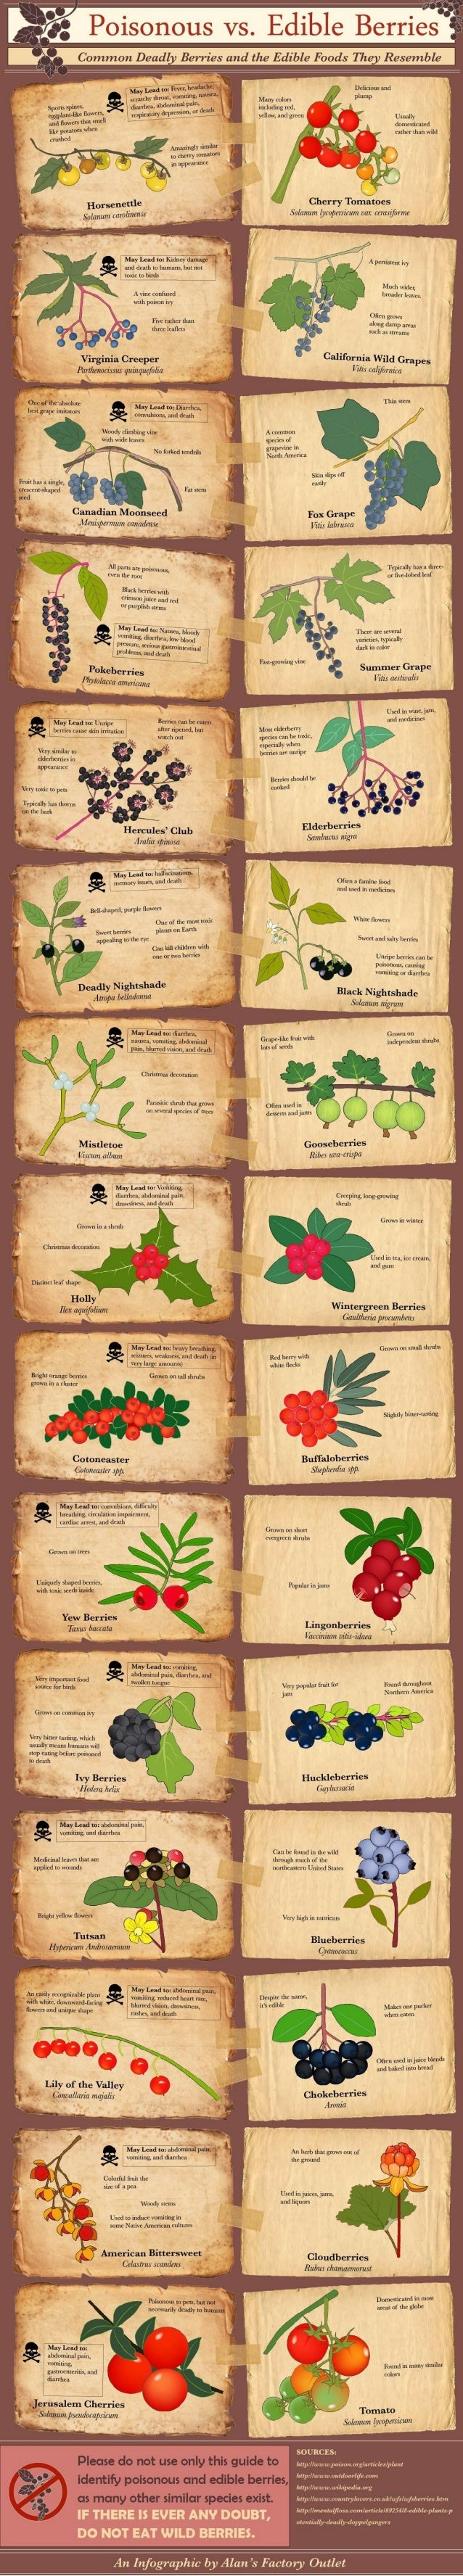 Poisonous vs Edible Berries - Common Deadly Berries and the Edible Foods they Resemble